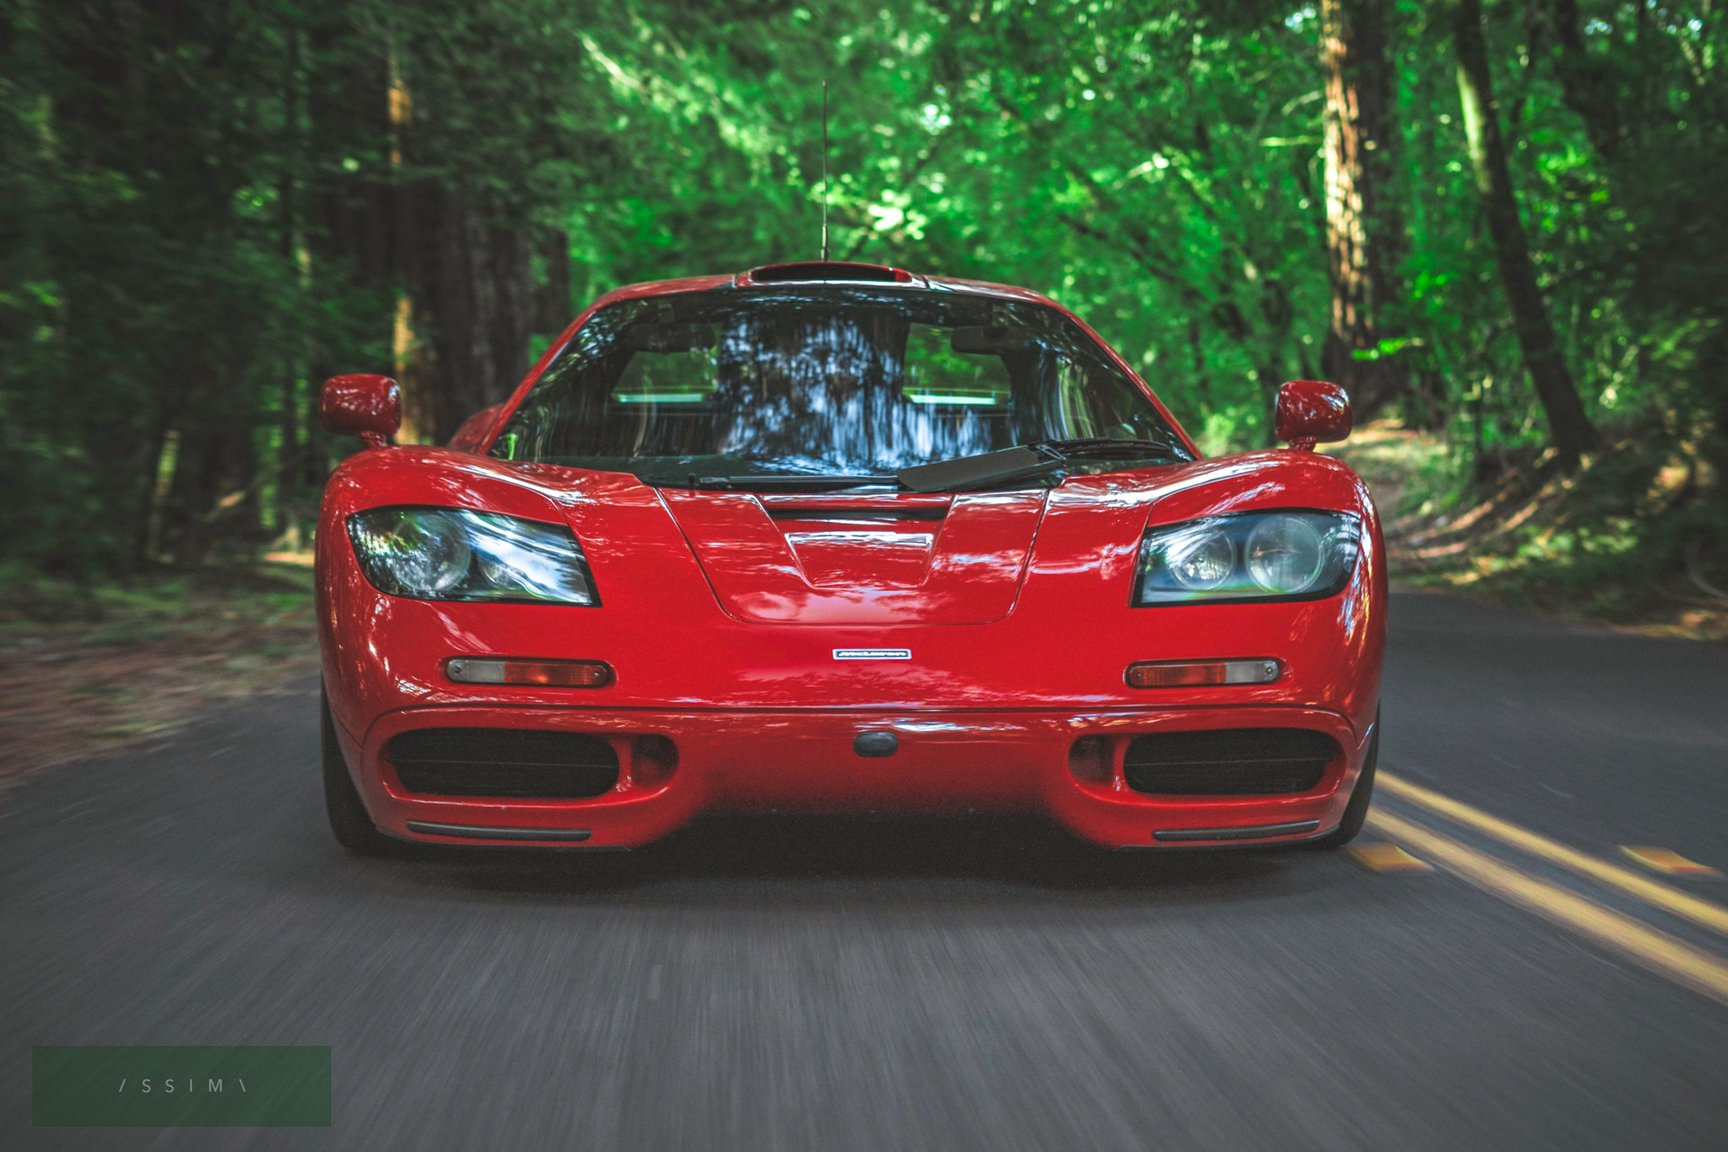 1995 McLaren F1 For Sale: 1 of 64 Road Cars Made Worldwide